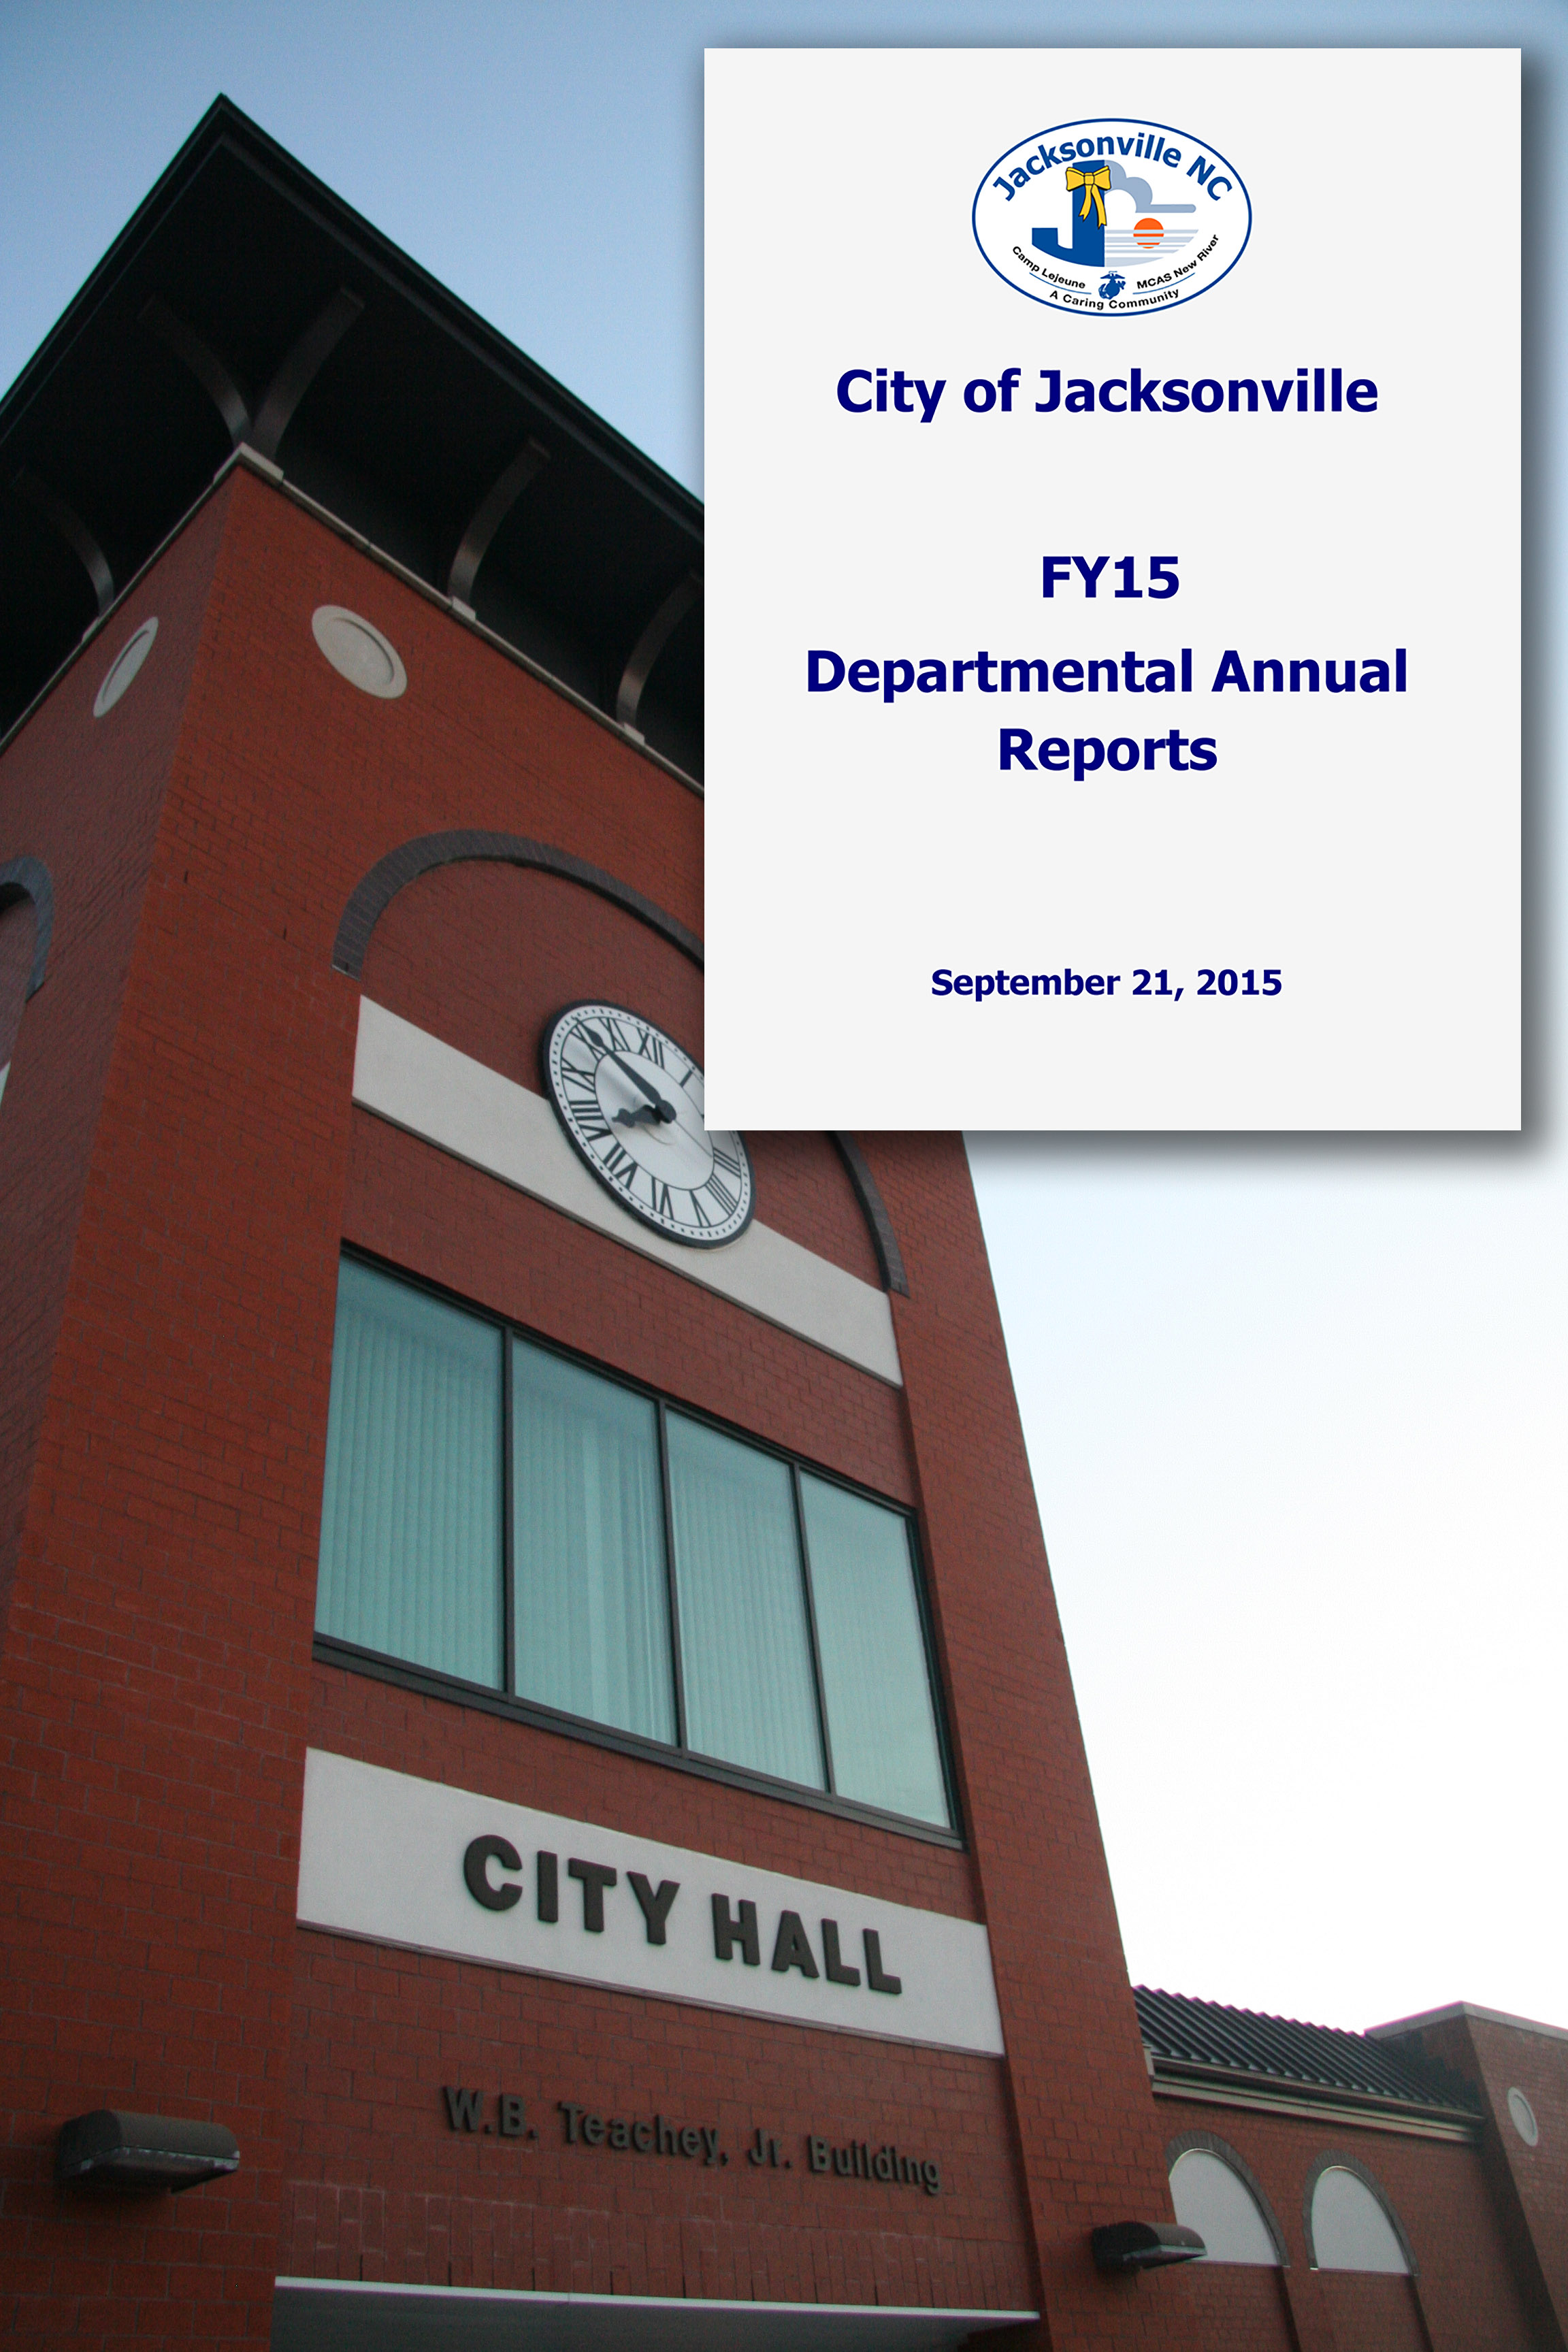 Annual Report, City of Jacksonville